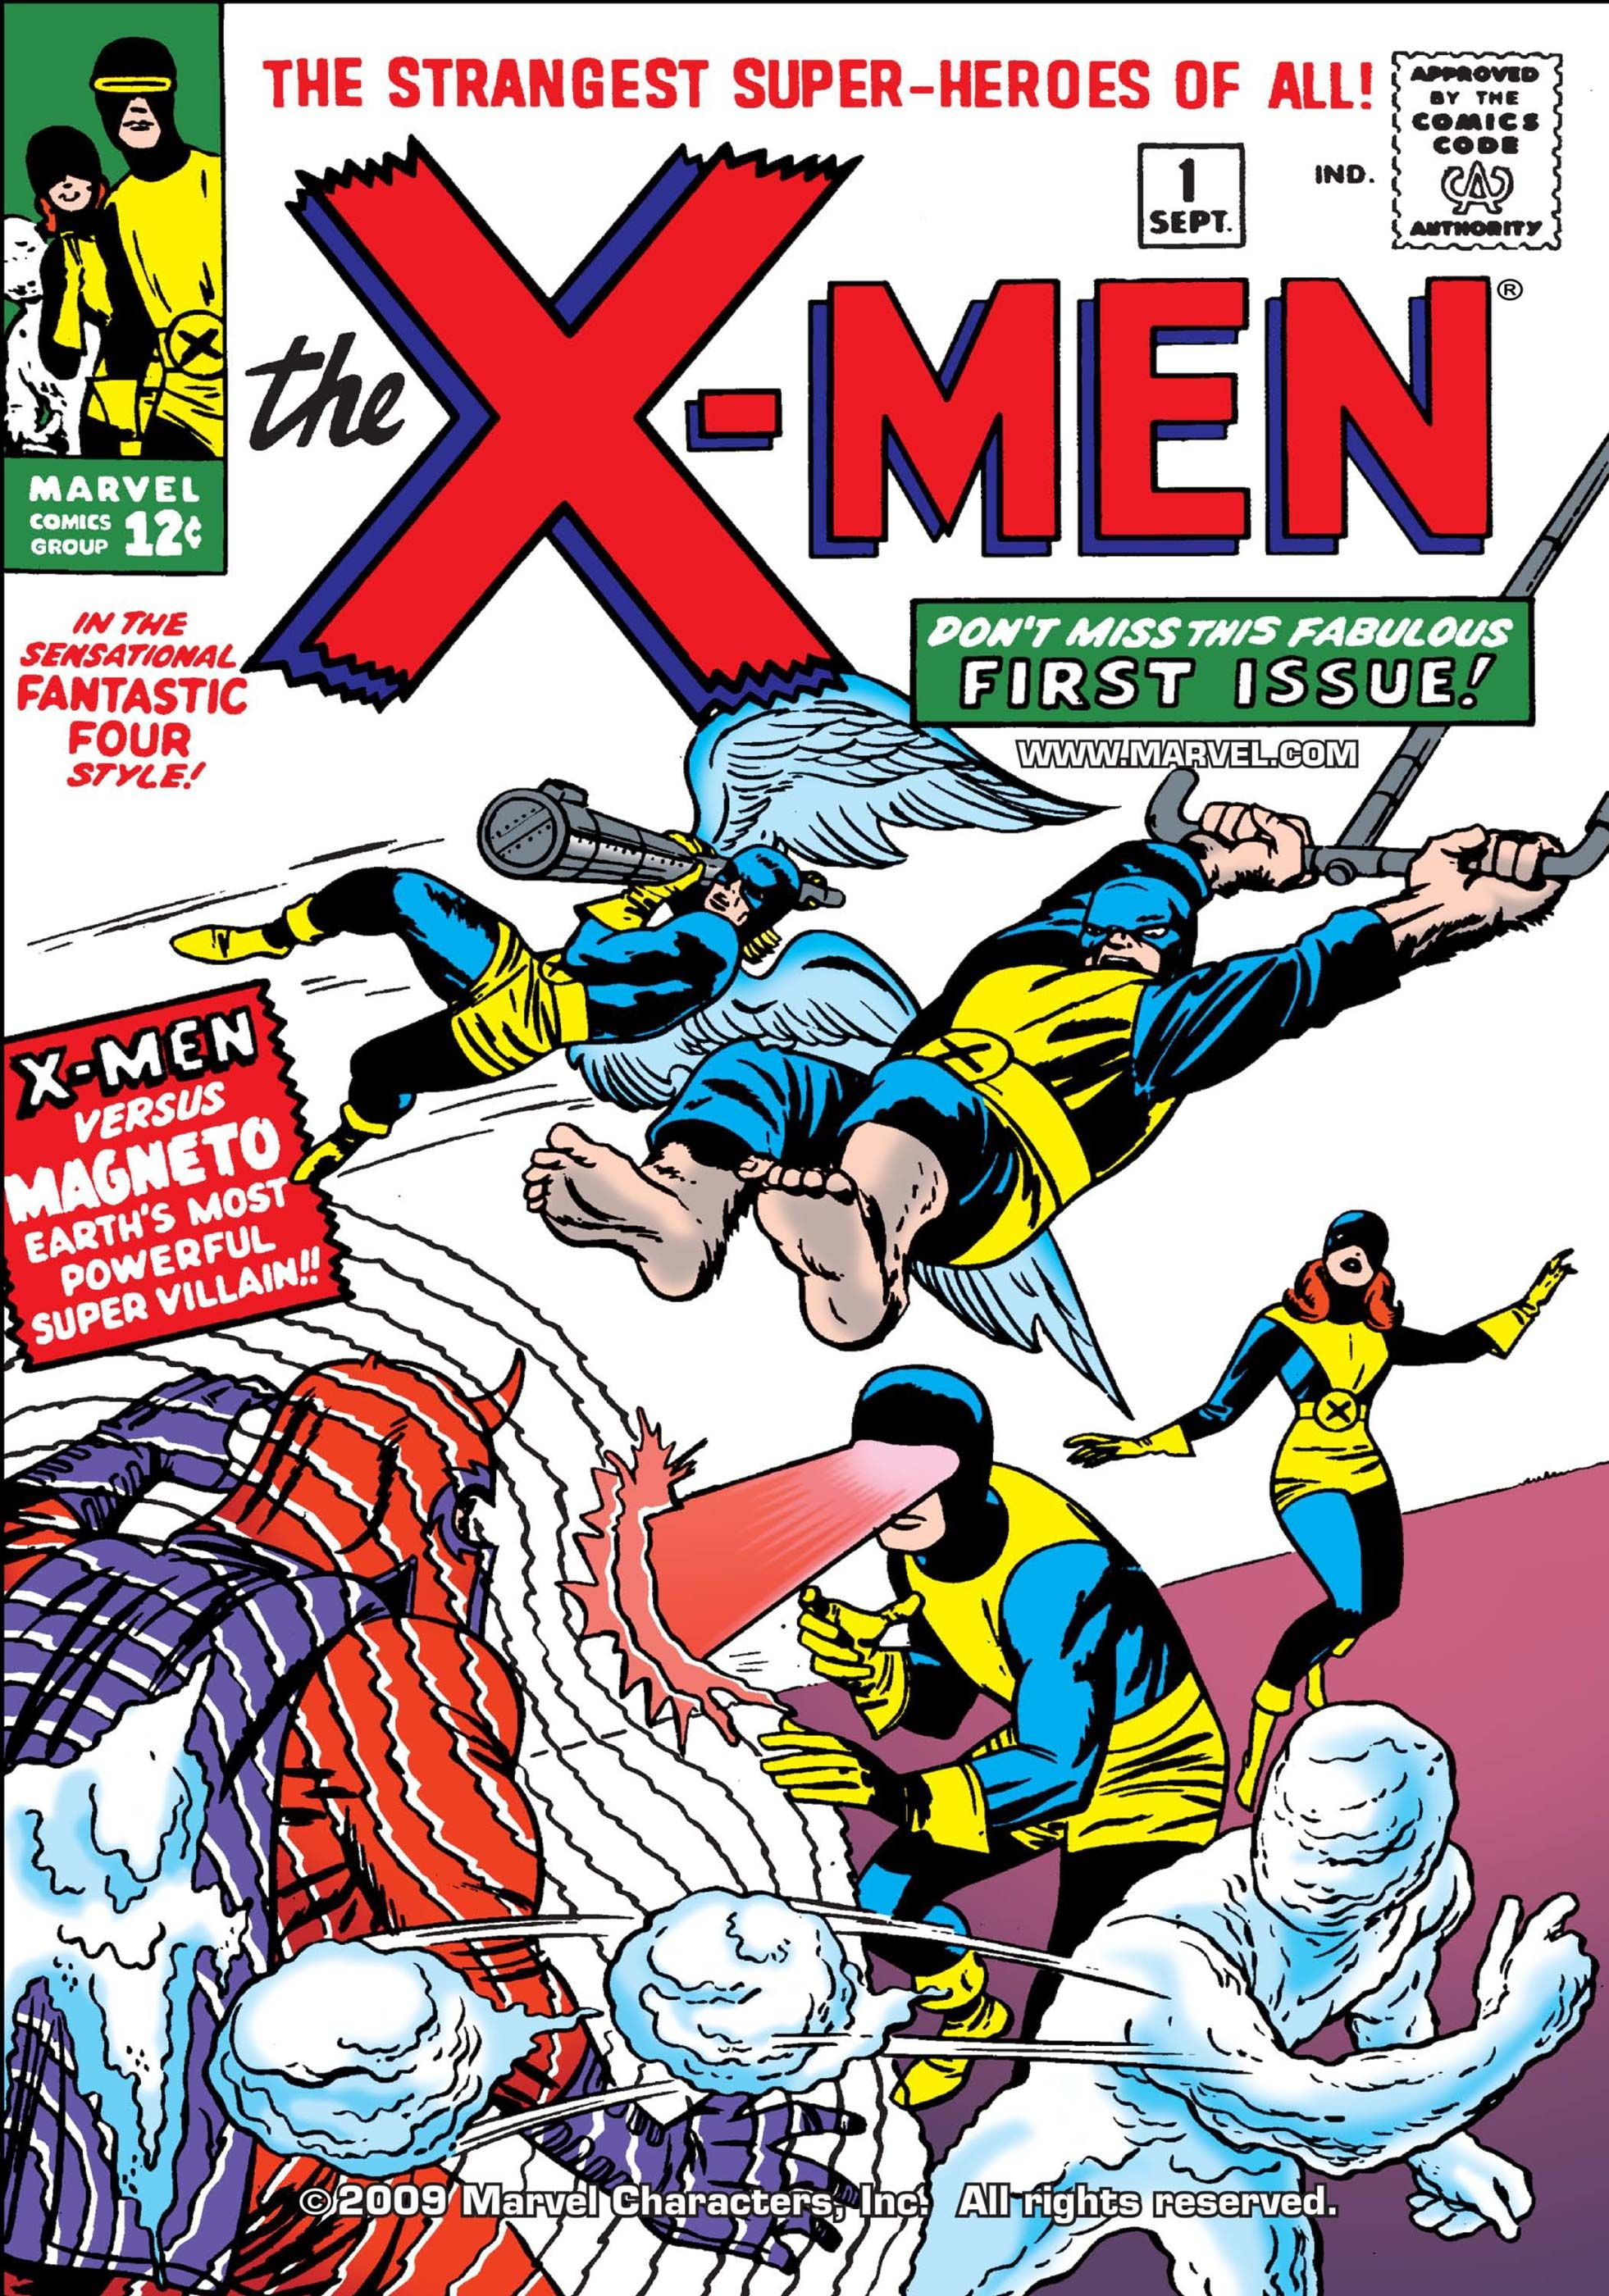 Uncanny X Men 1963 1 Marvel Comics Covers Xmen Comics Comic Book Covers